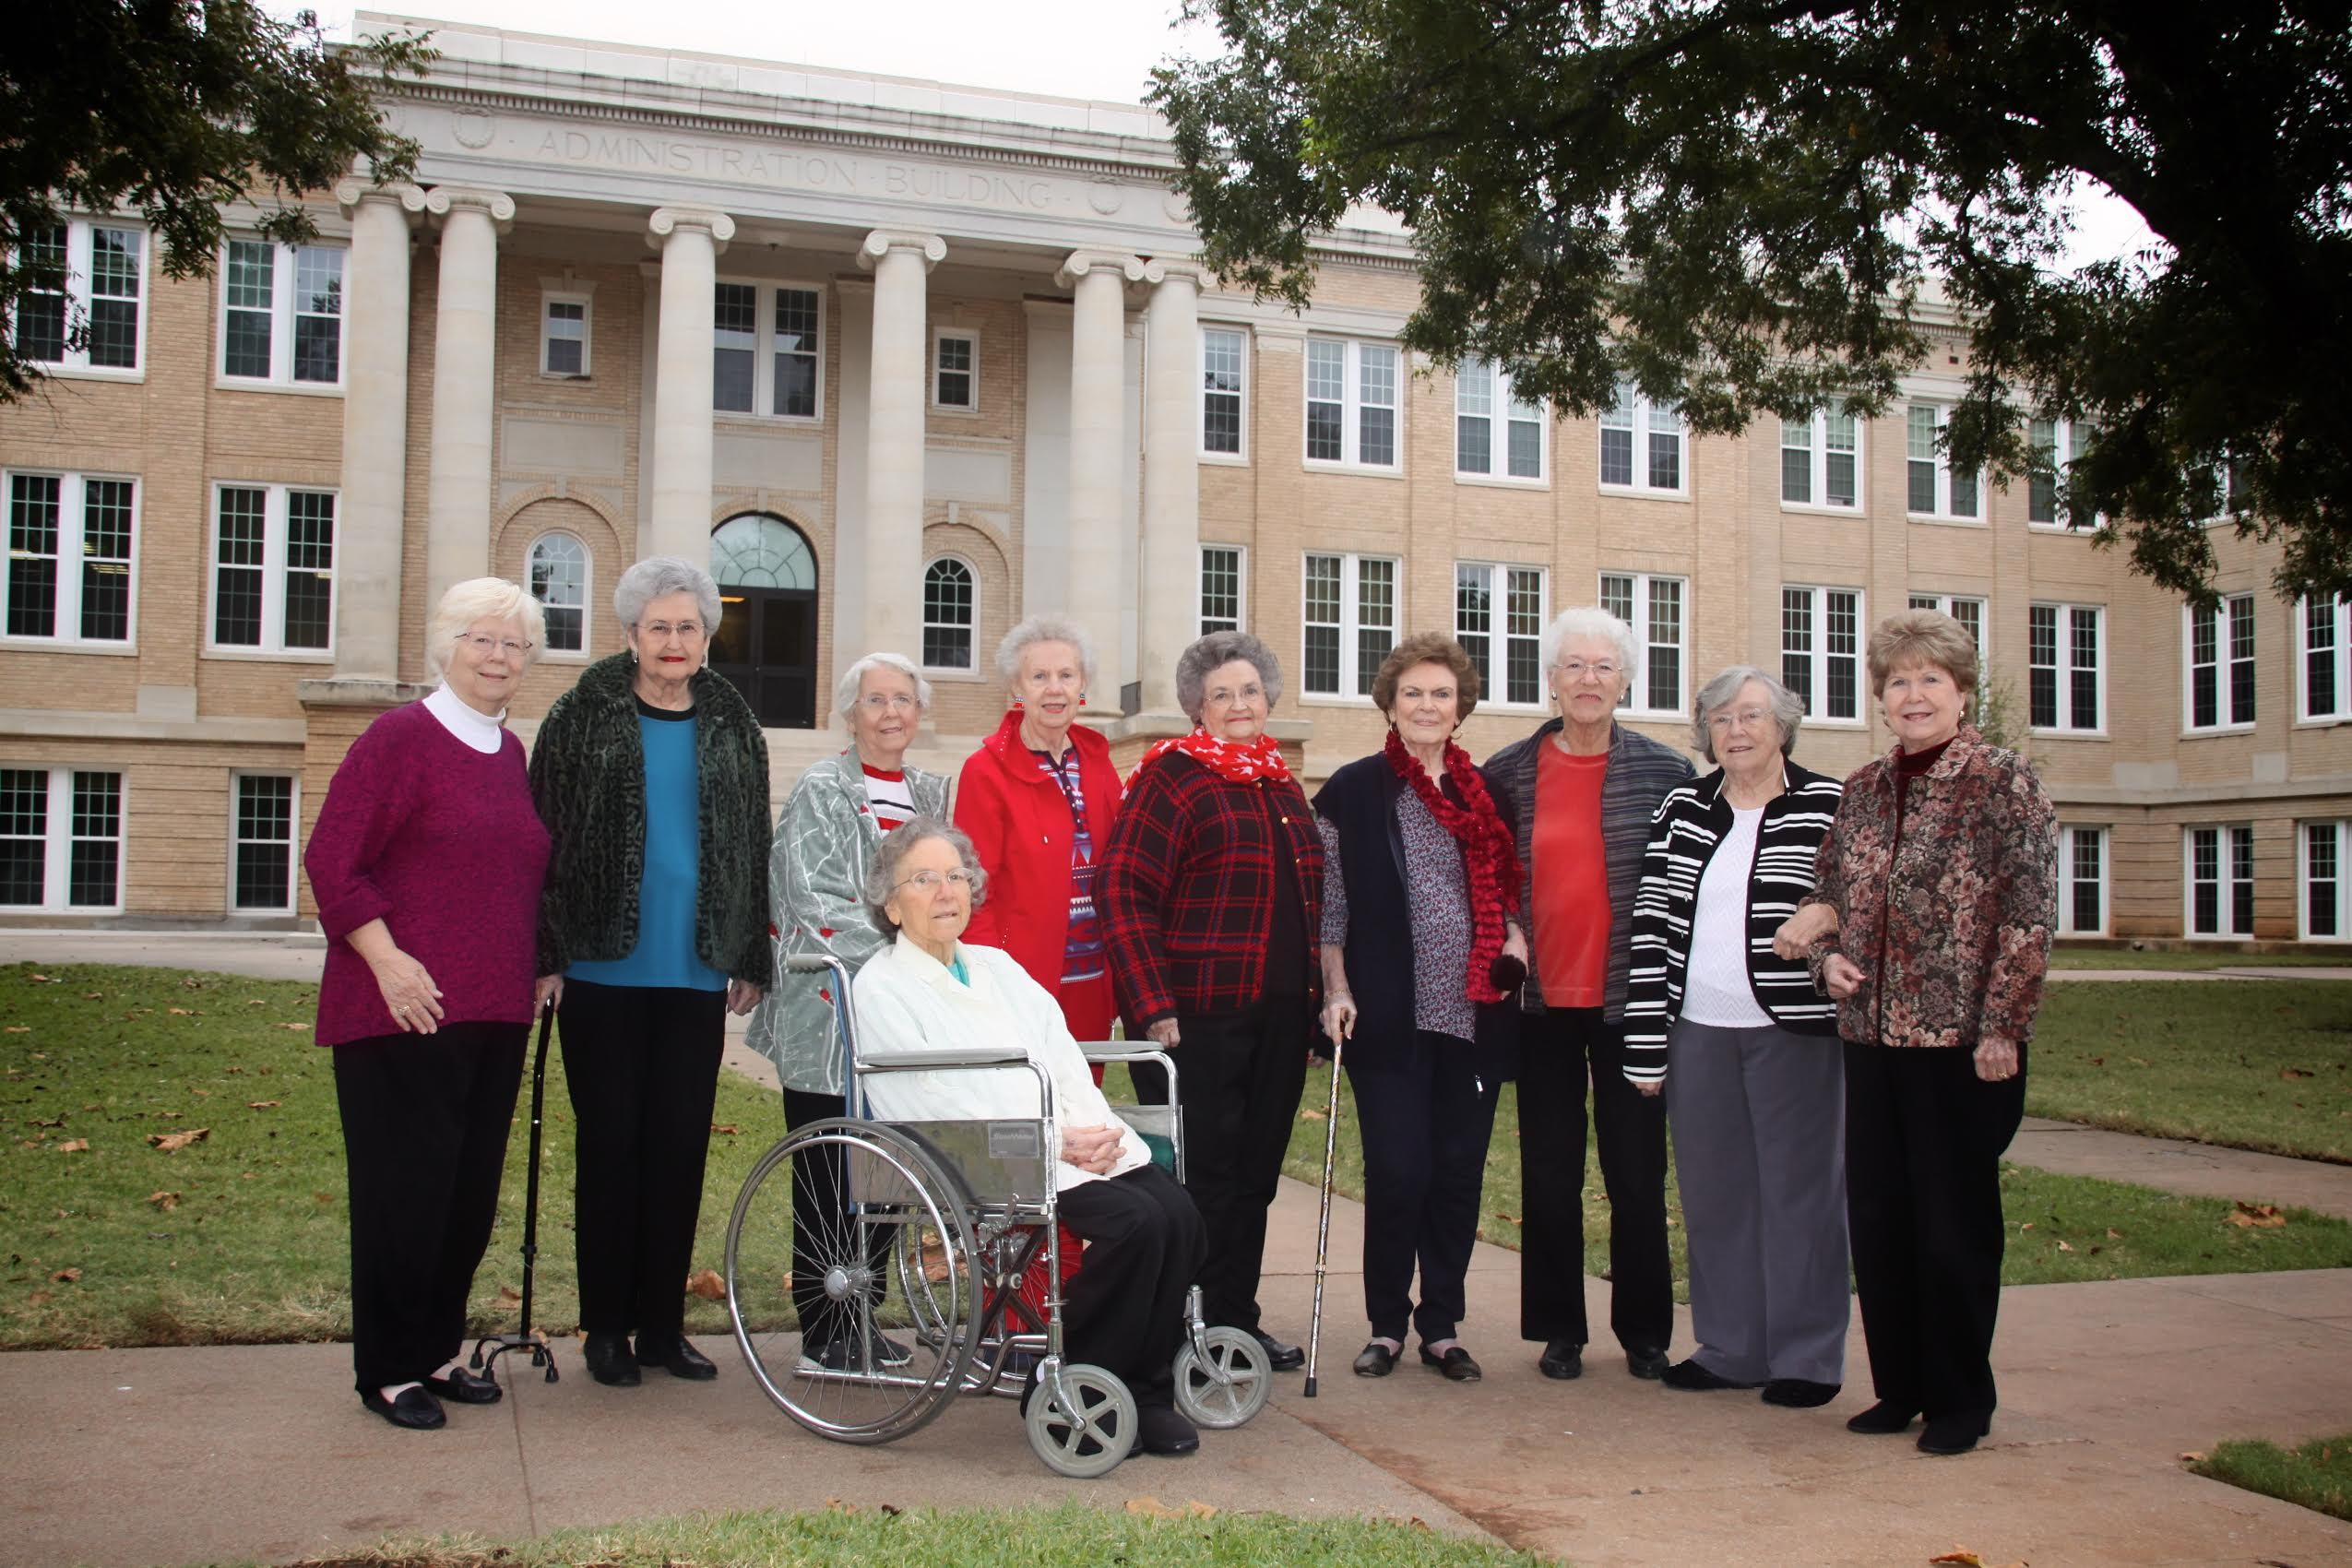 "Members of the Class of 1955's ""Lunch Bunch,"" from the left: Wanda (Porter) Craig; Betty (Griffin) Hale; Linda (May) Hart; Joyce (Kent) Faver; Peggy (Gambill) Marler; Jo (Turner) Etter; Chris (Terry) Grounds; Bernice (Bourland) Scott; Betty (Phillips) Grant. In front: Nancy (Lewis) Ferguson."